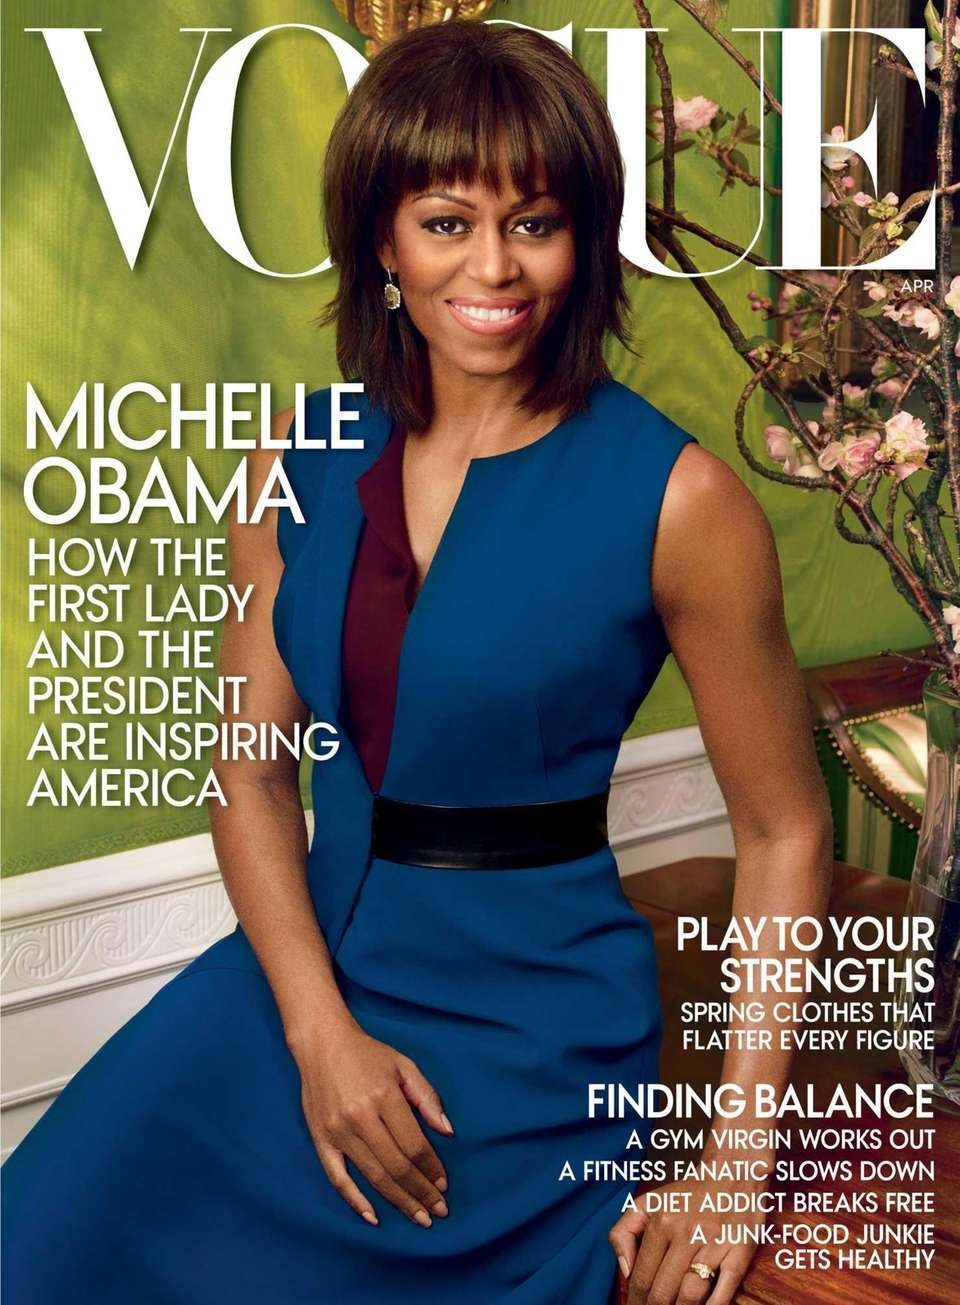 This cover image shows first lady Michelle Obama's